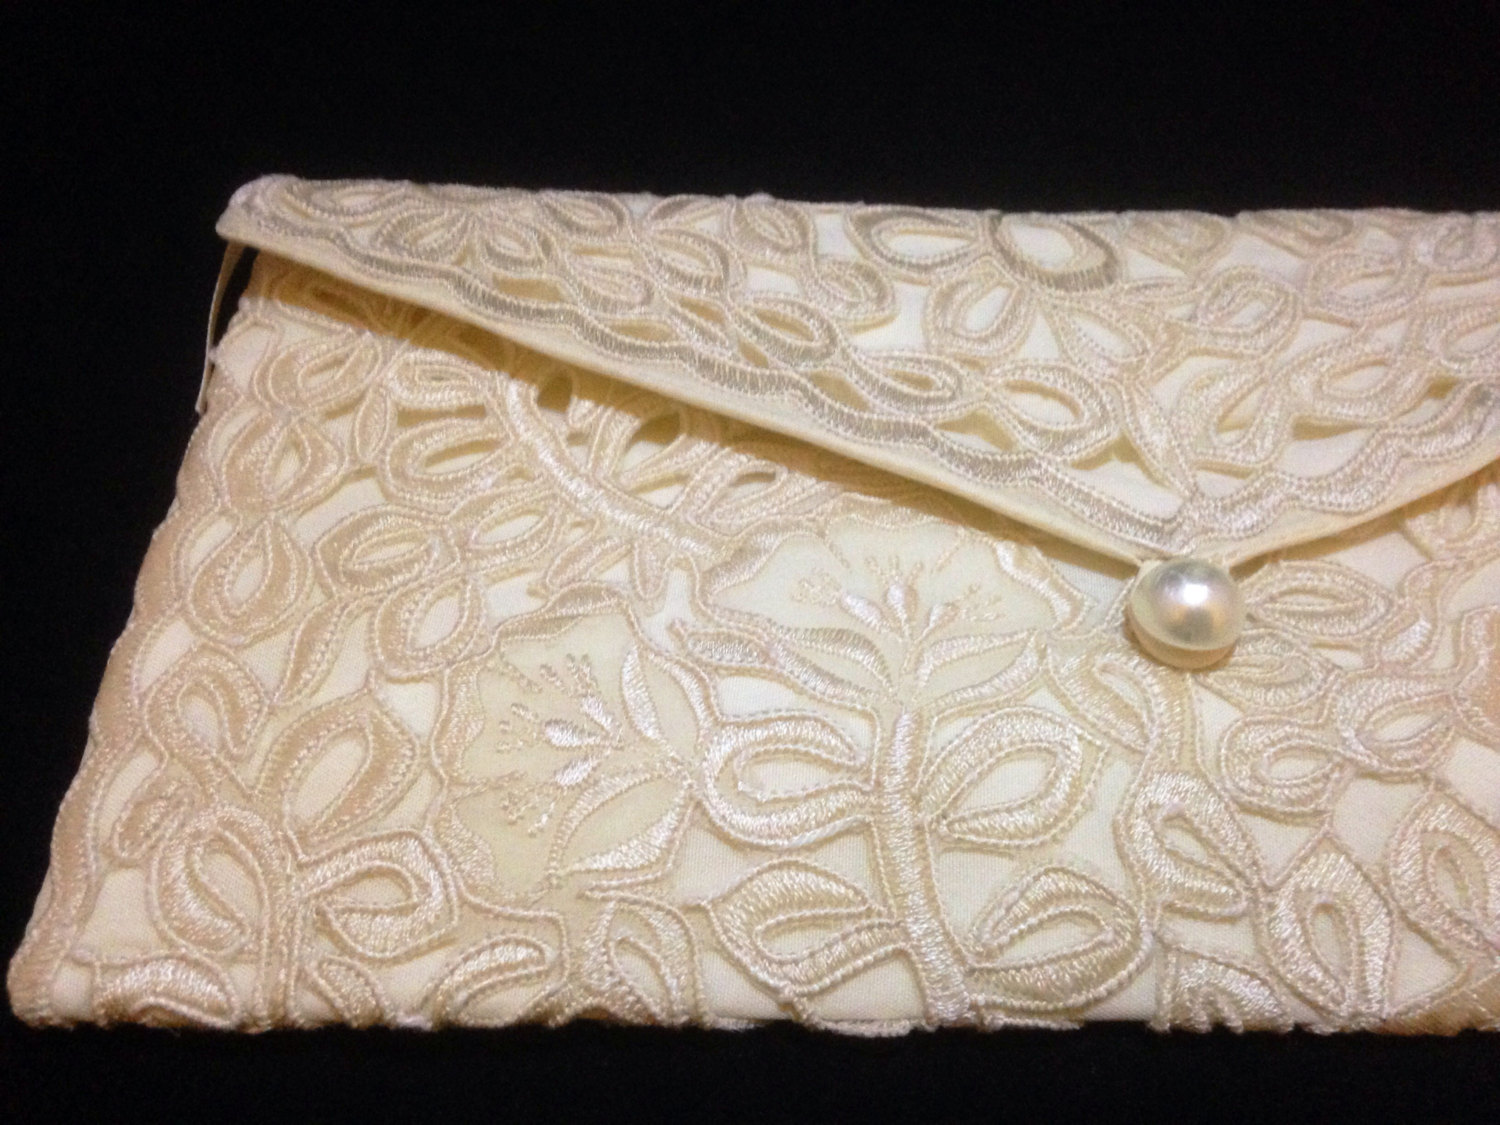 Champagne Lace Clutch Purse- Envelope Clutch Purse- Philippines Cutwork Embroidery Clutch- Bridal Clutch Purse- Wedding Clutch- Jusi Silk (28847468 ADARNA GALLERY) photo